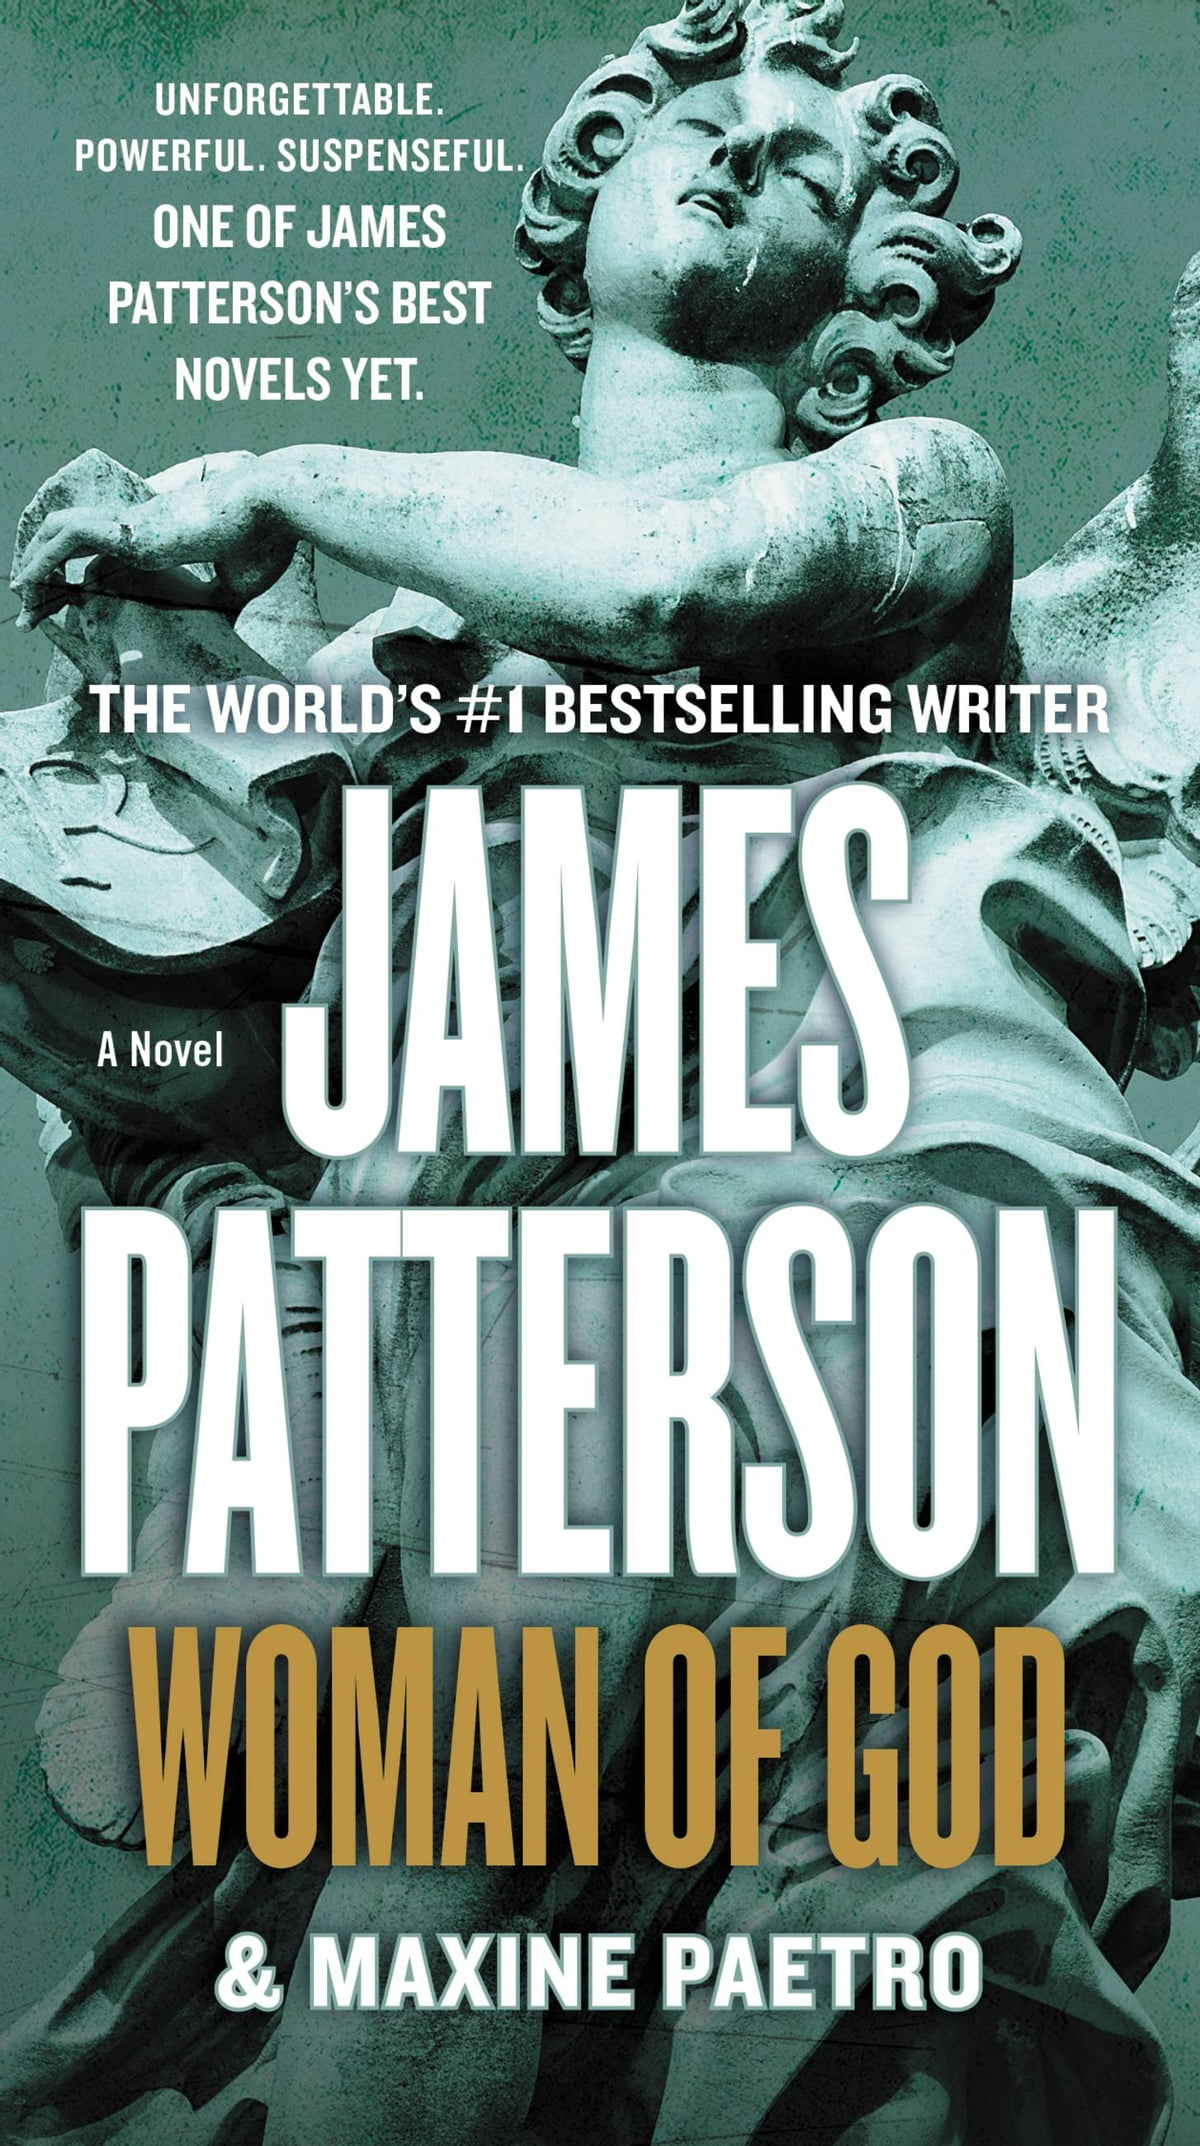 The chemist ebook by stephenie meyer 9780316387859 rakuten kobo woman of god ebook by james patterson fandeluxe Image collections